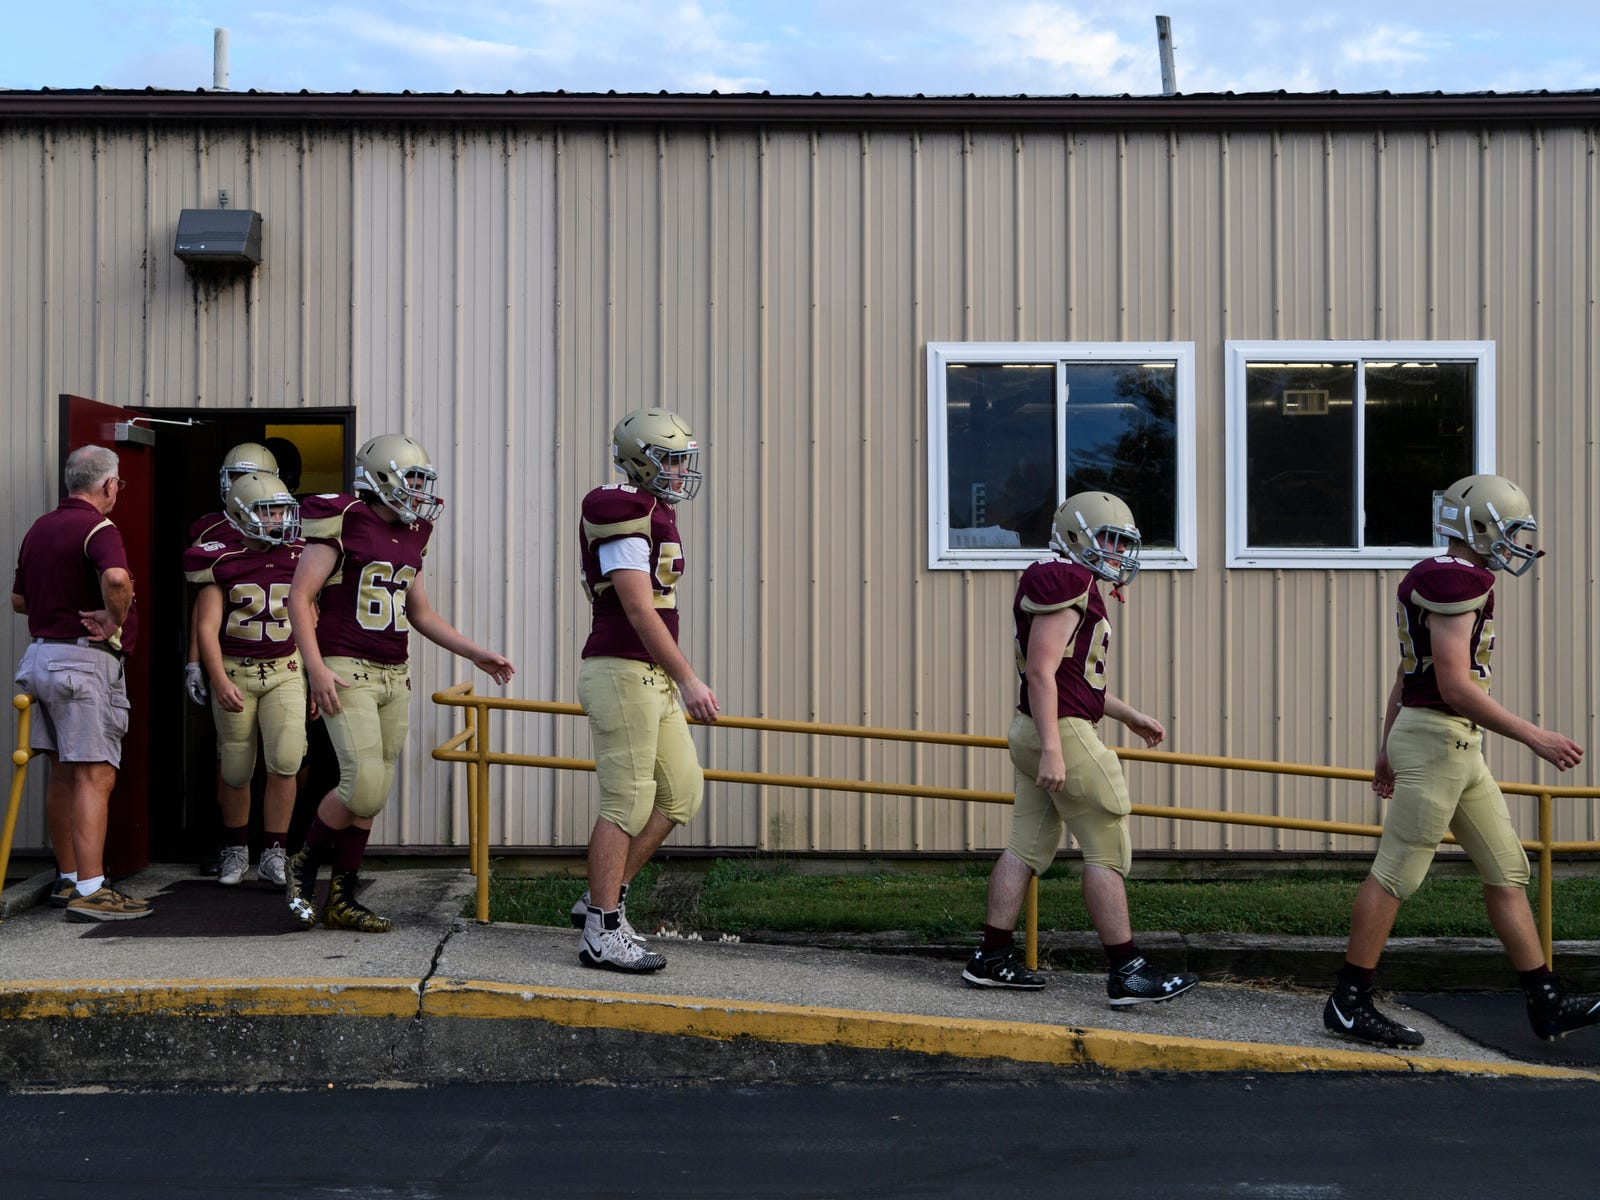 The Mount Carmel Golden Aces prepare for their descent down the stairs of Riverview Stadium, known as the Snake Pit, in Mount Carmel, Ill., Friday, Sept. 21, 2018. The Golden Aces defeated the Washington Hatchets 61-20.